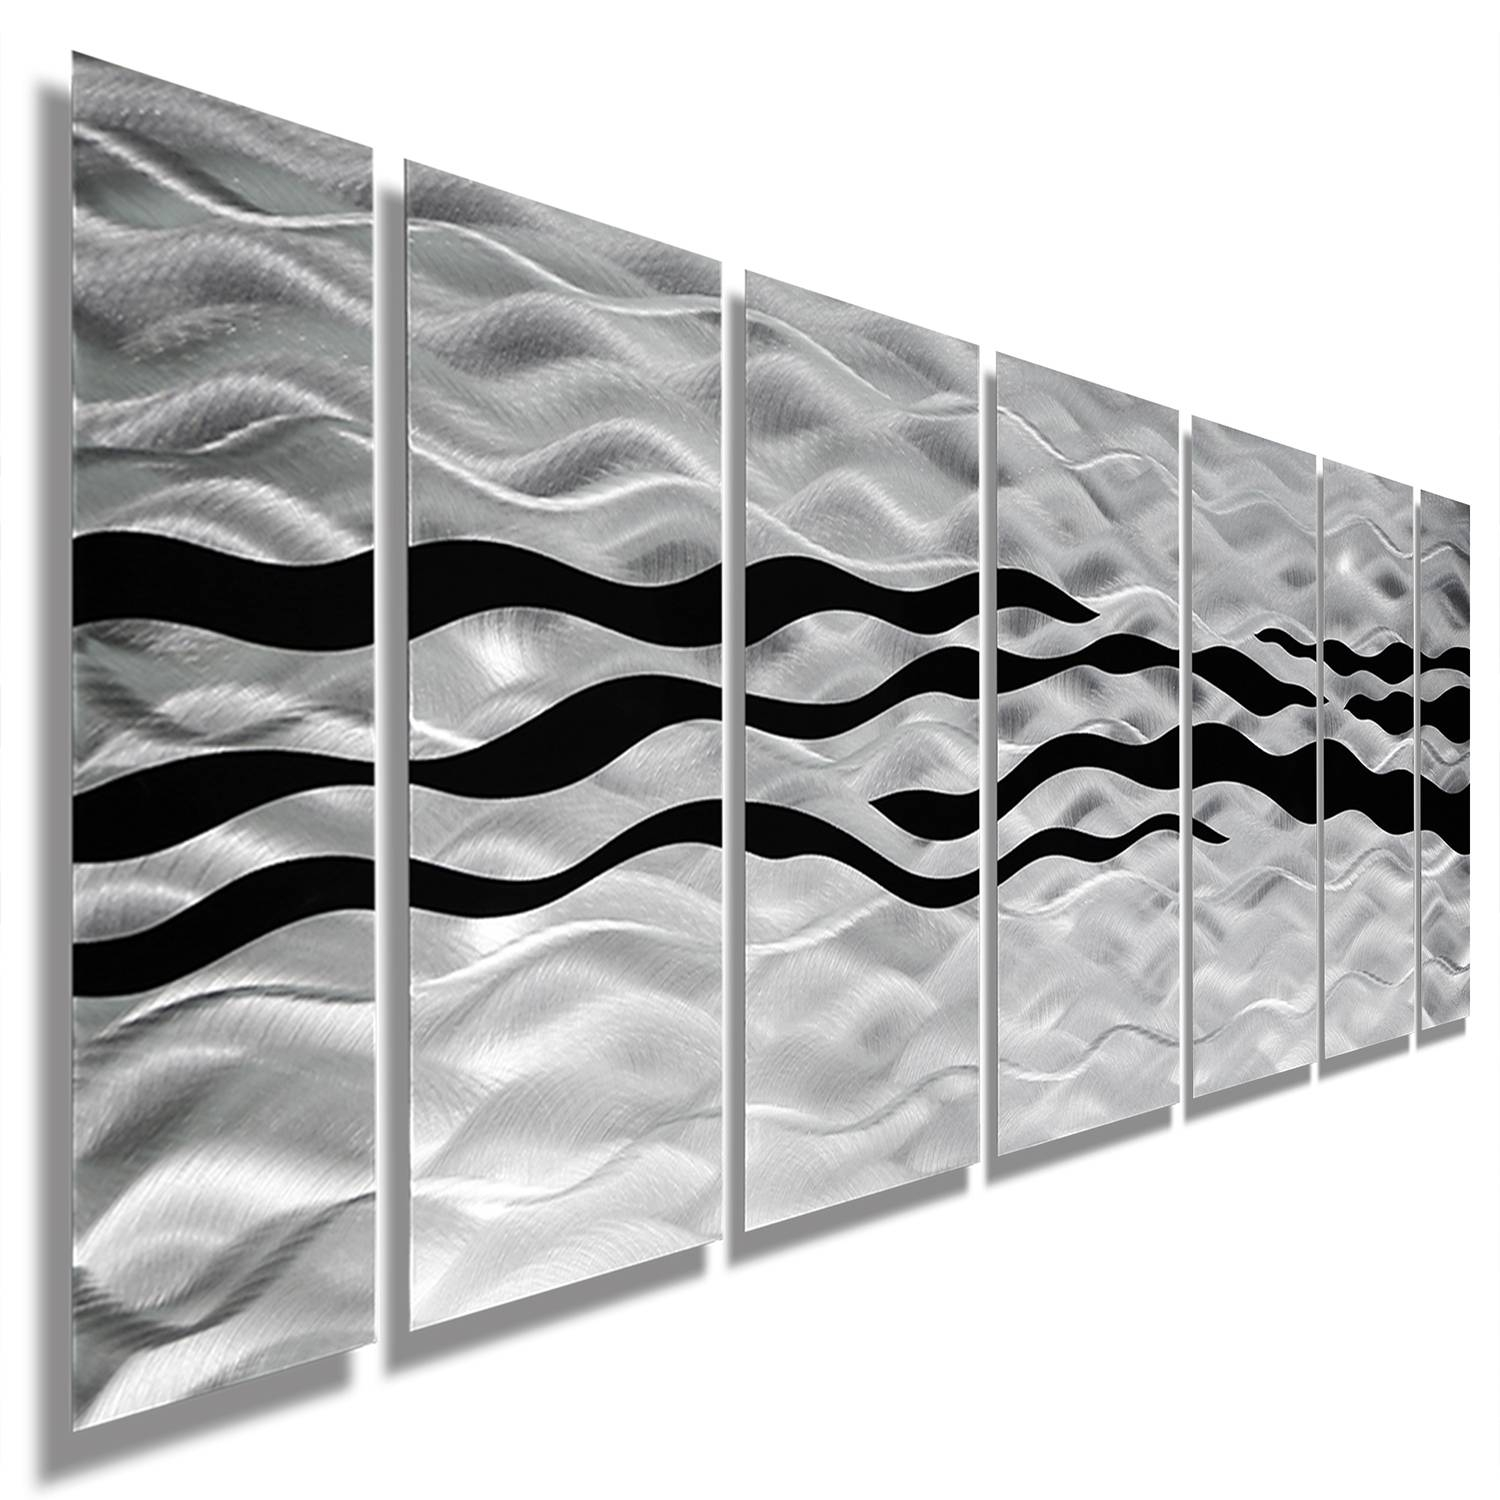 Wild Ways – Silver And Black Modern Metallic Wall Hanging Regarding Most Recent Contemporary Metal Wall Art Decor (View 20 of 20)